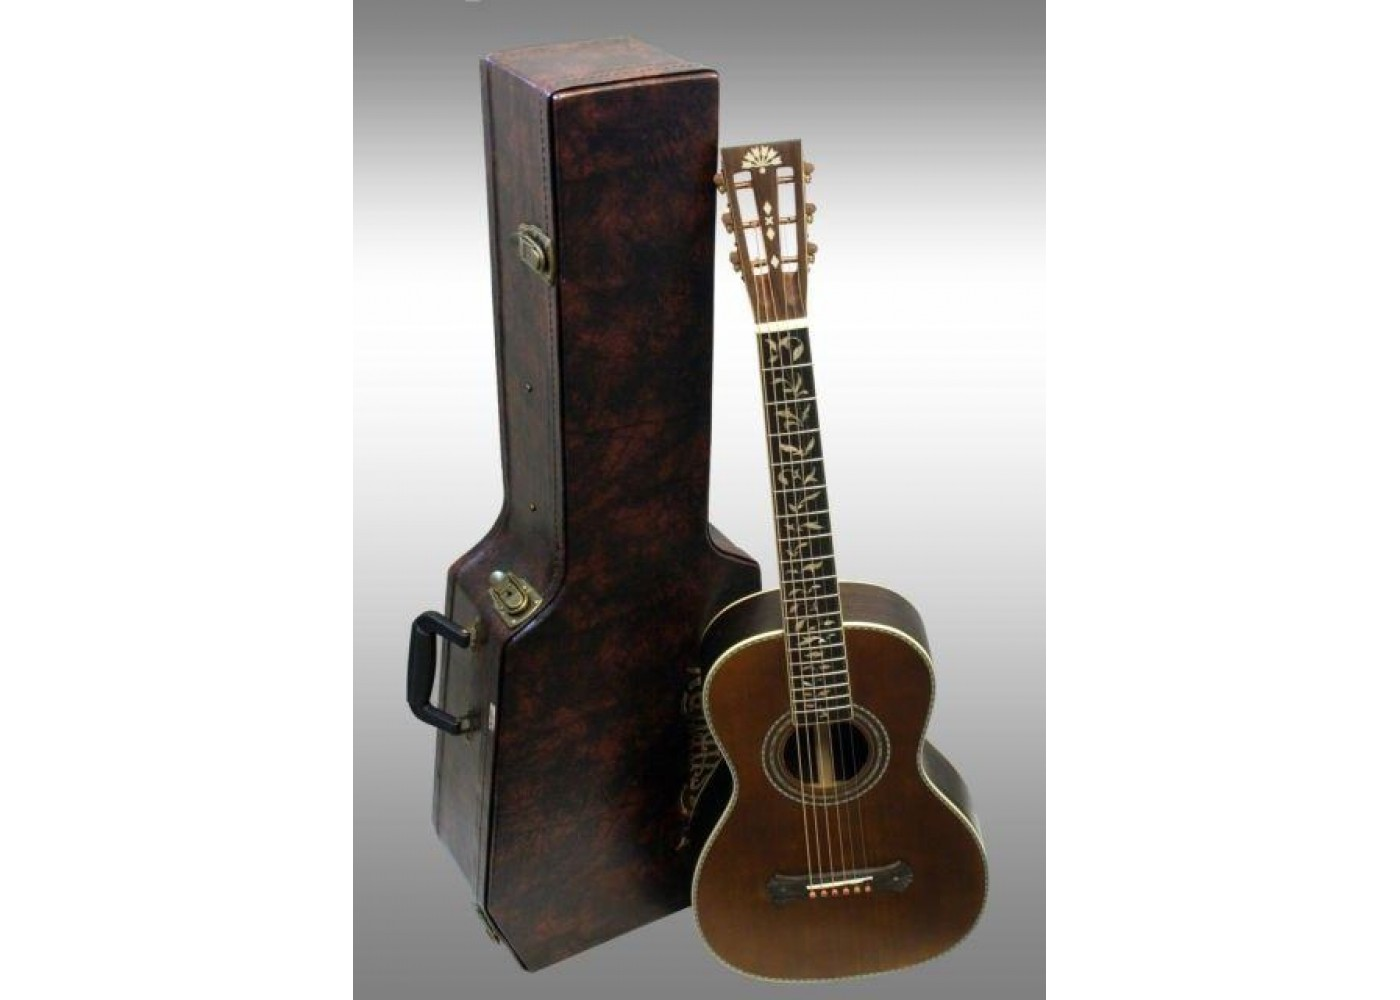 washburn r320swrk revival series parlor size acoustic guitar w case b1 blem. Black Bedroom Furniture Sets. Home Design Ideas